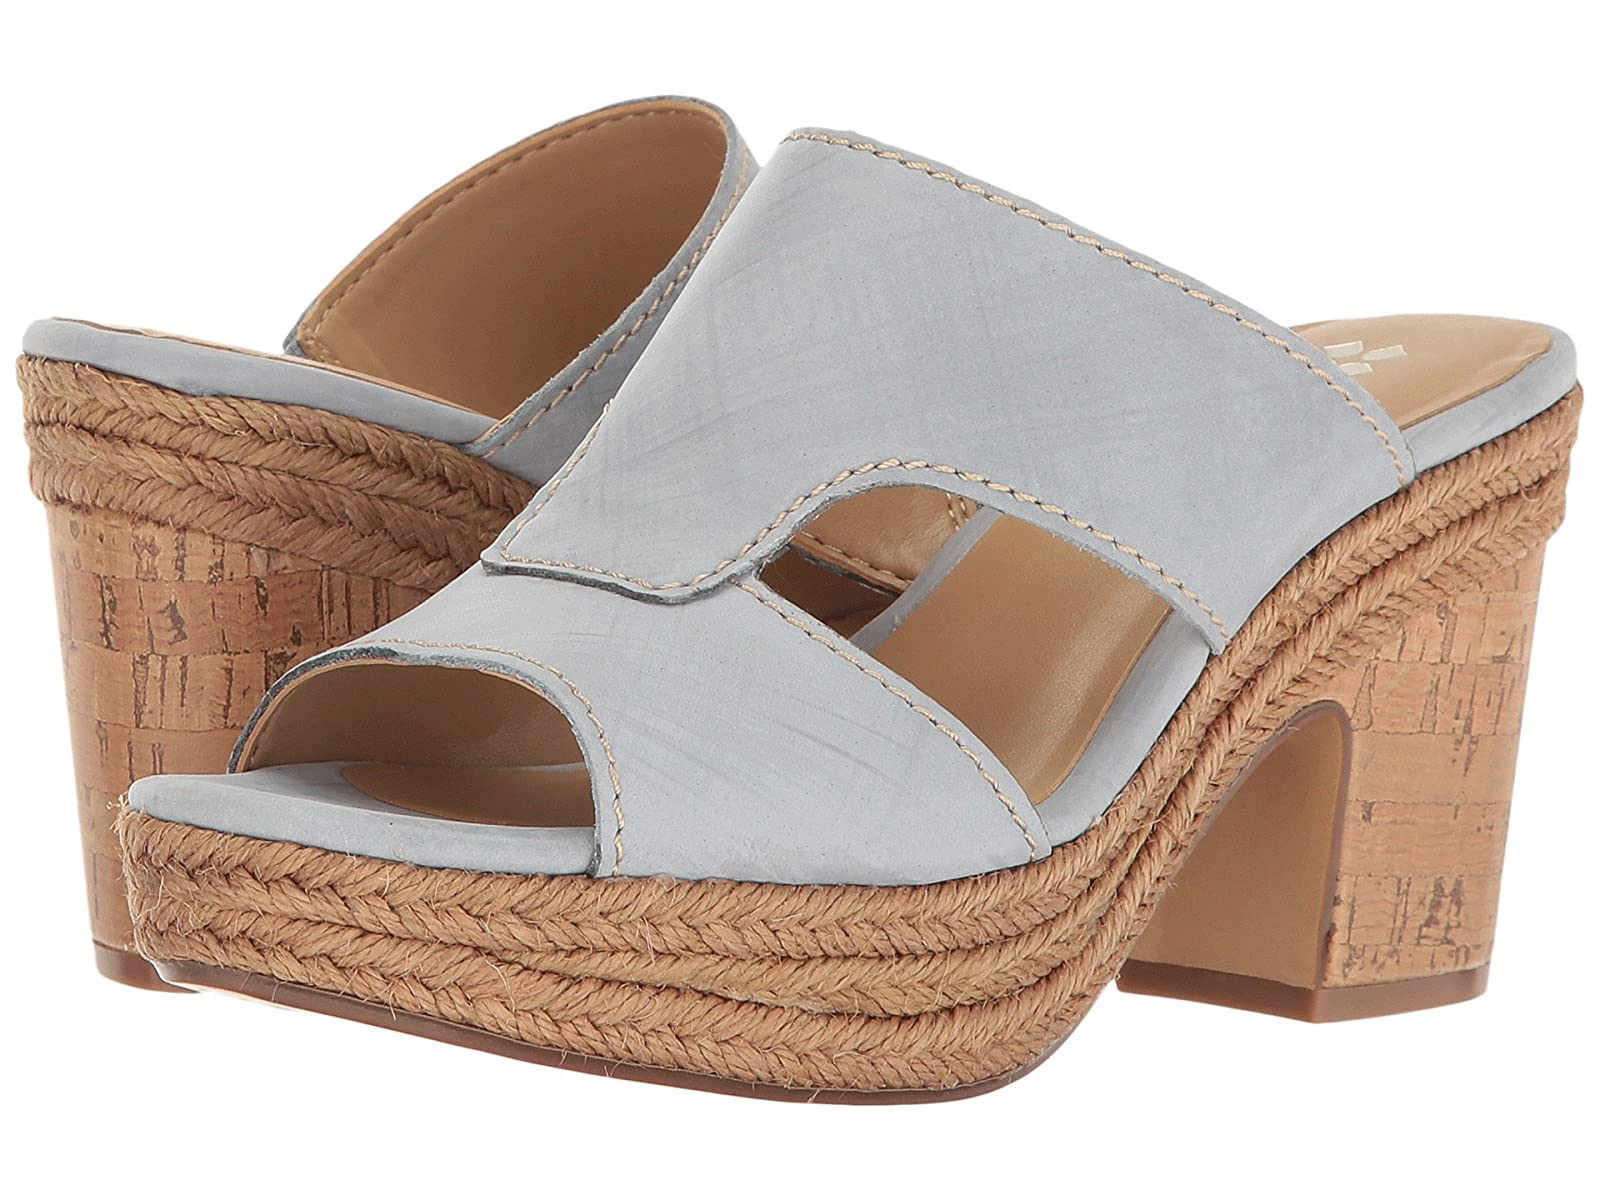 Naturalizer EvetteCheap and distinctive eye-catching shoes